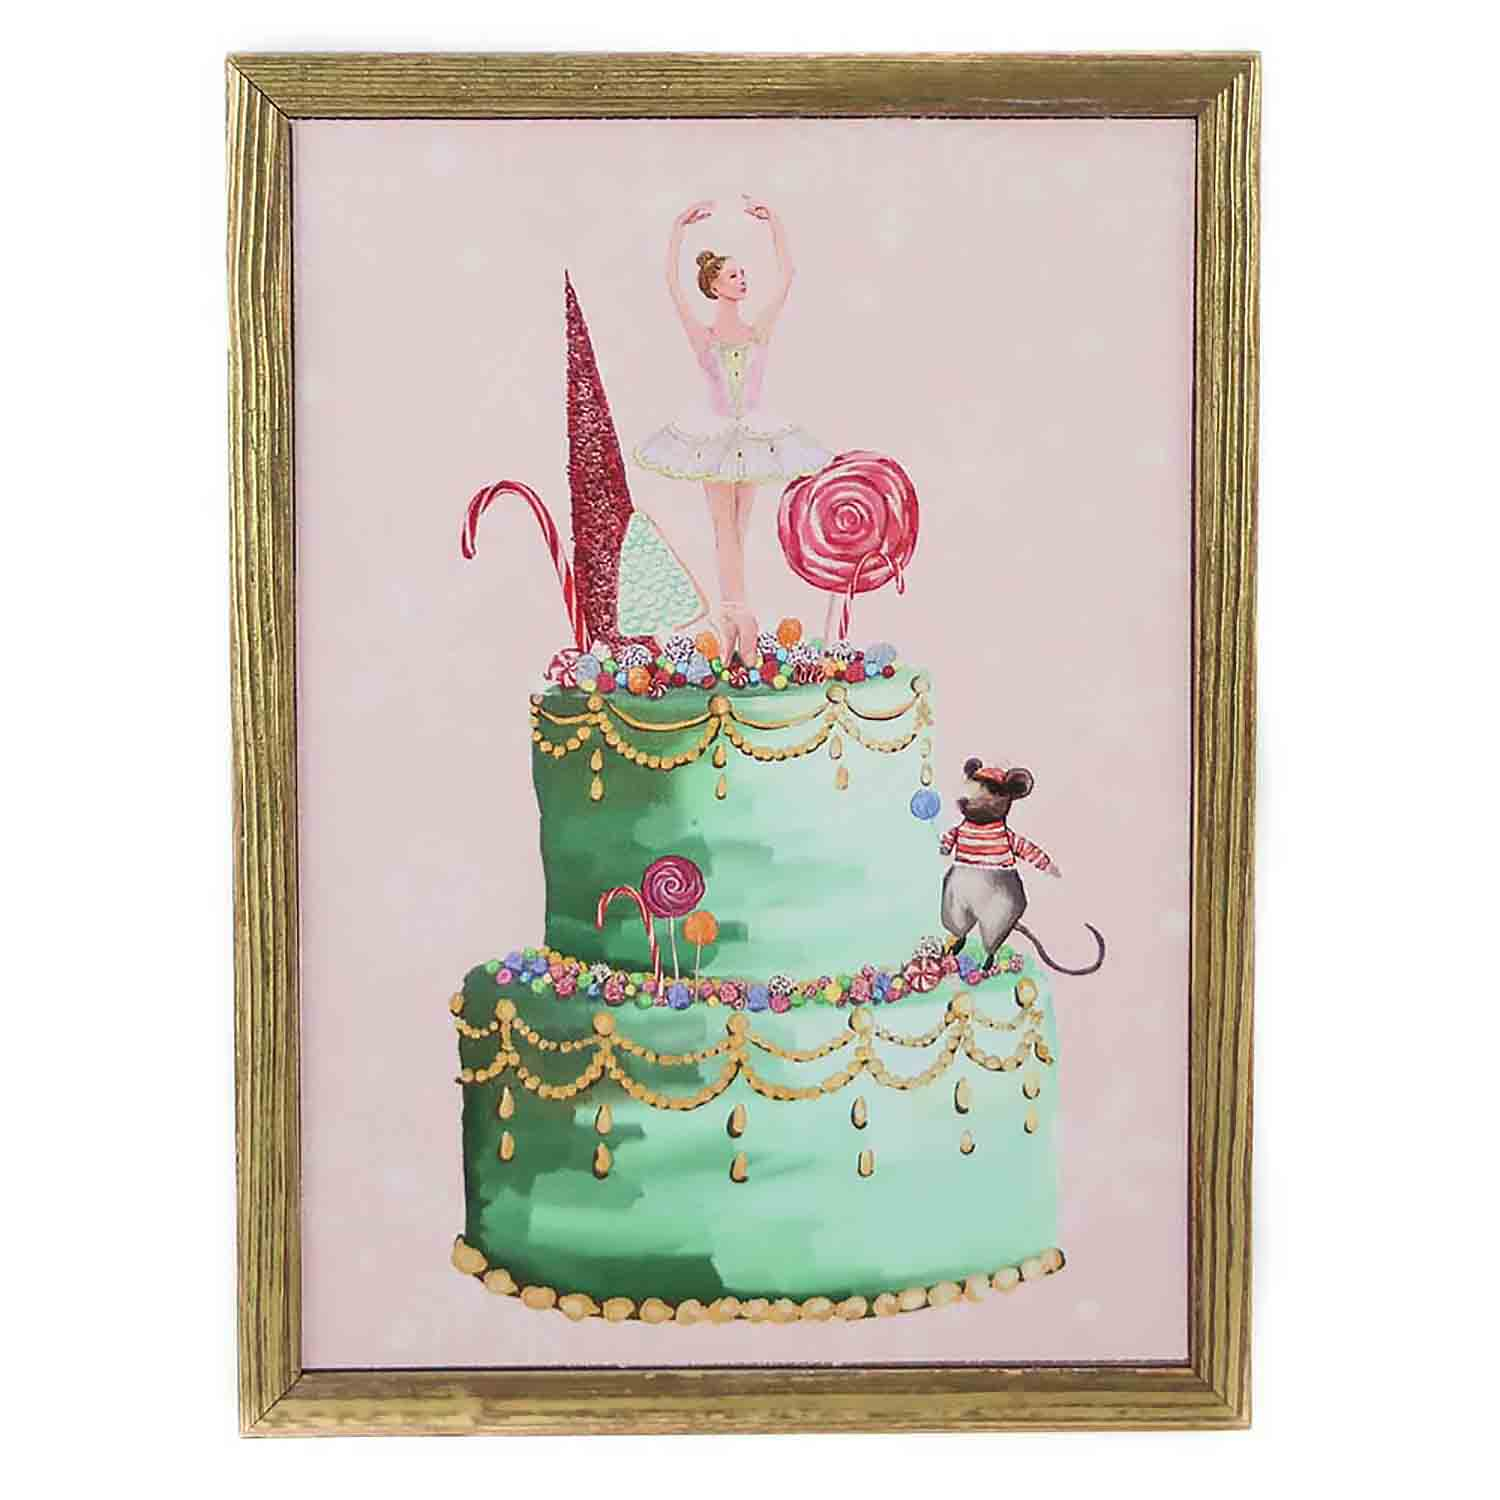 Sugarplum Fairy Mini Framed Canvas